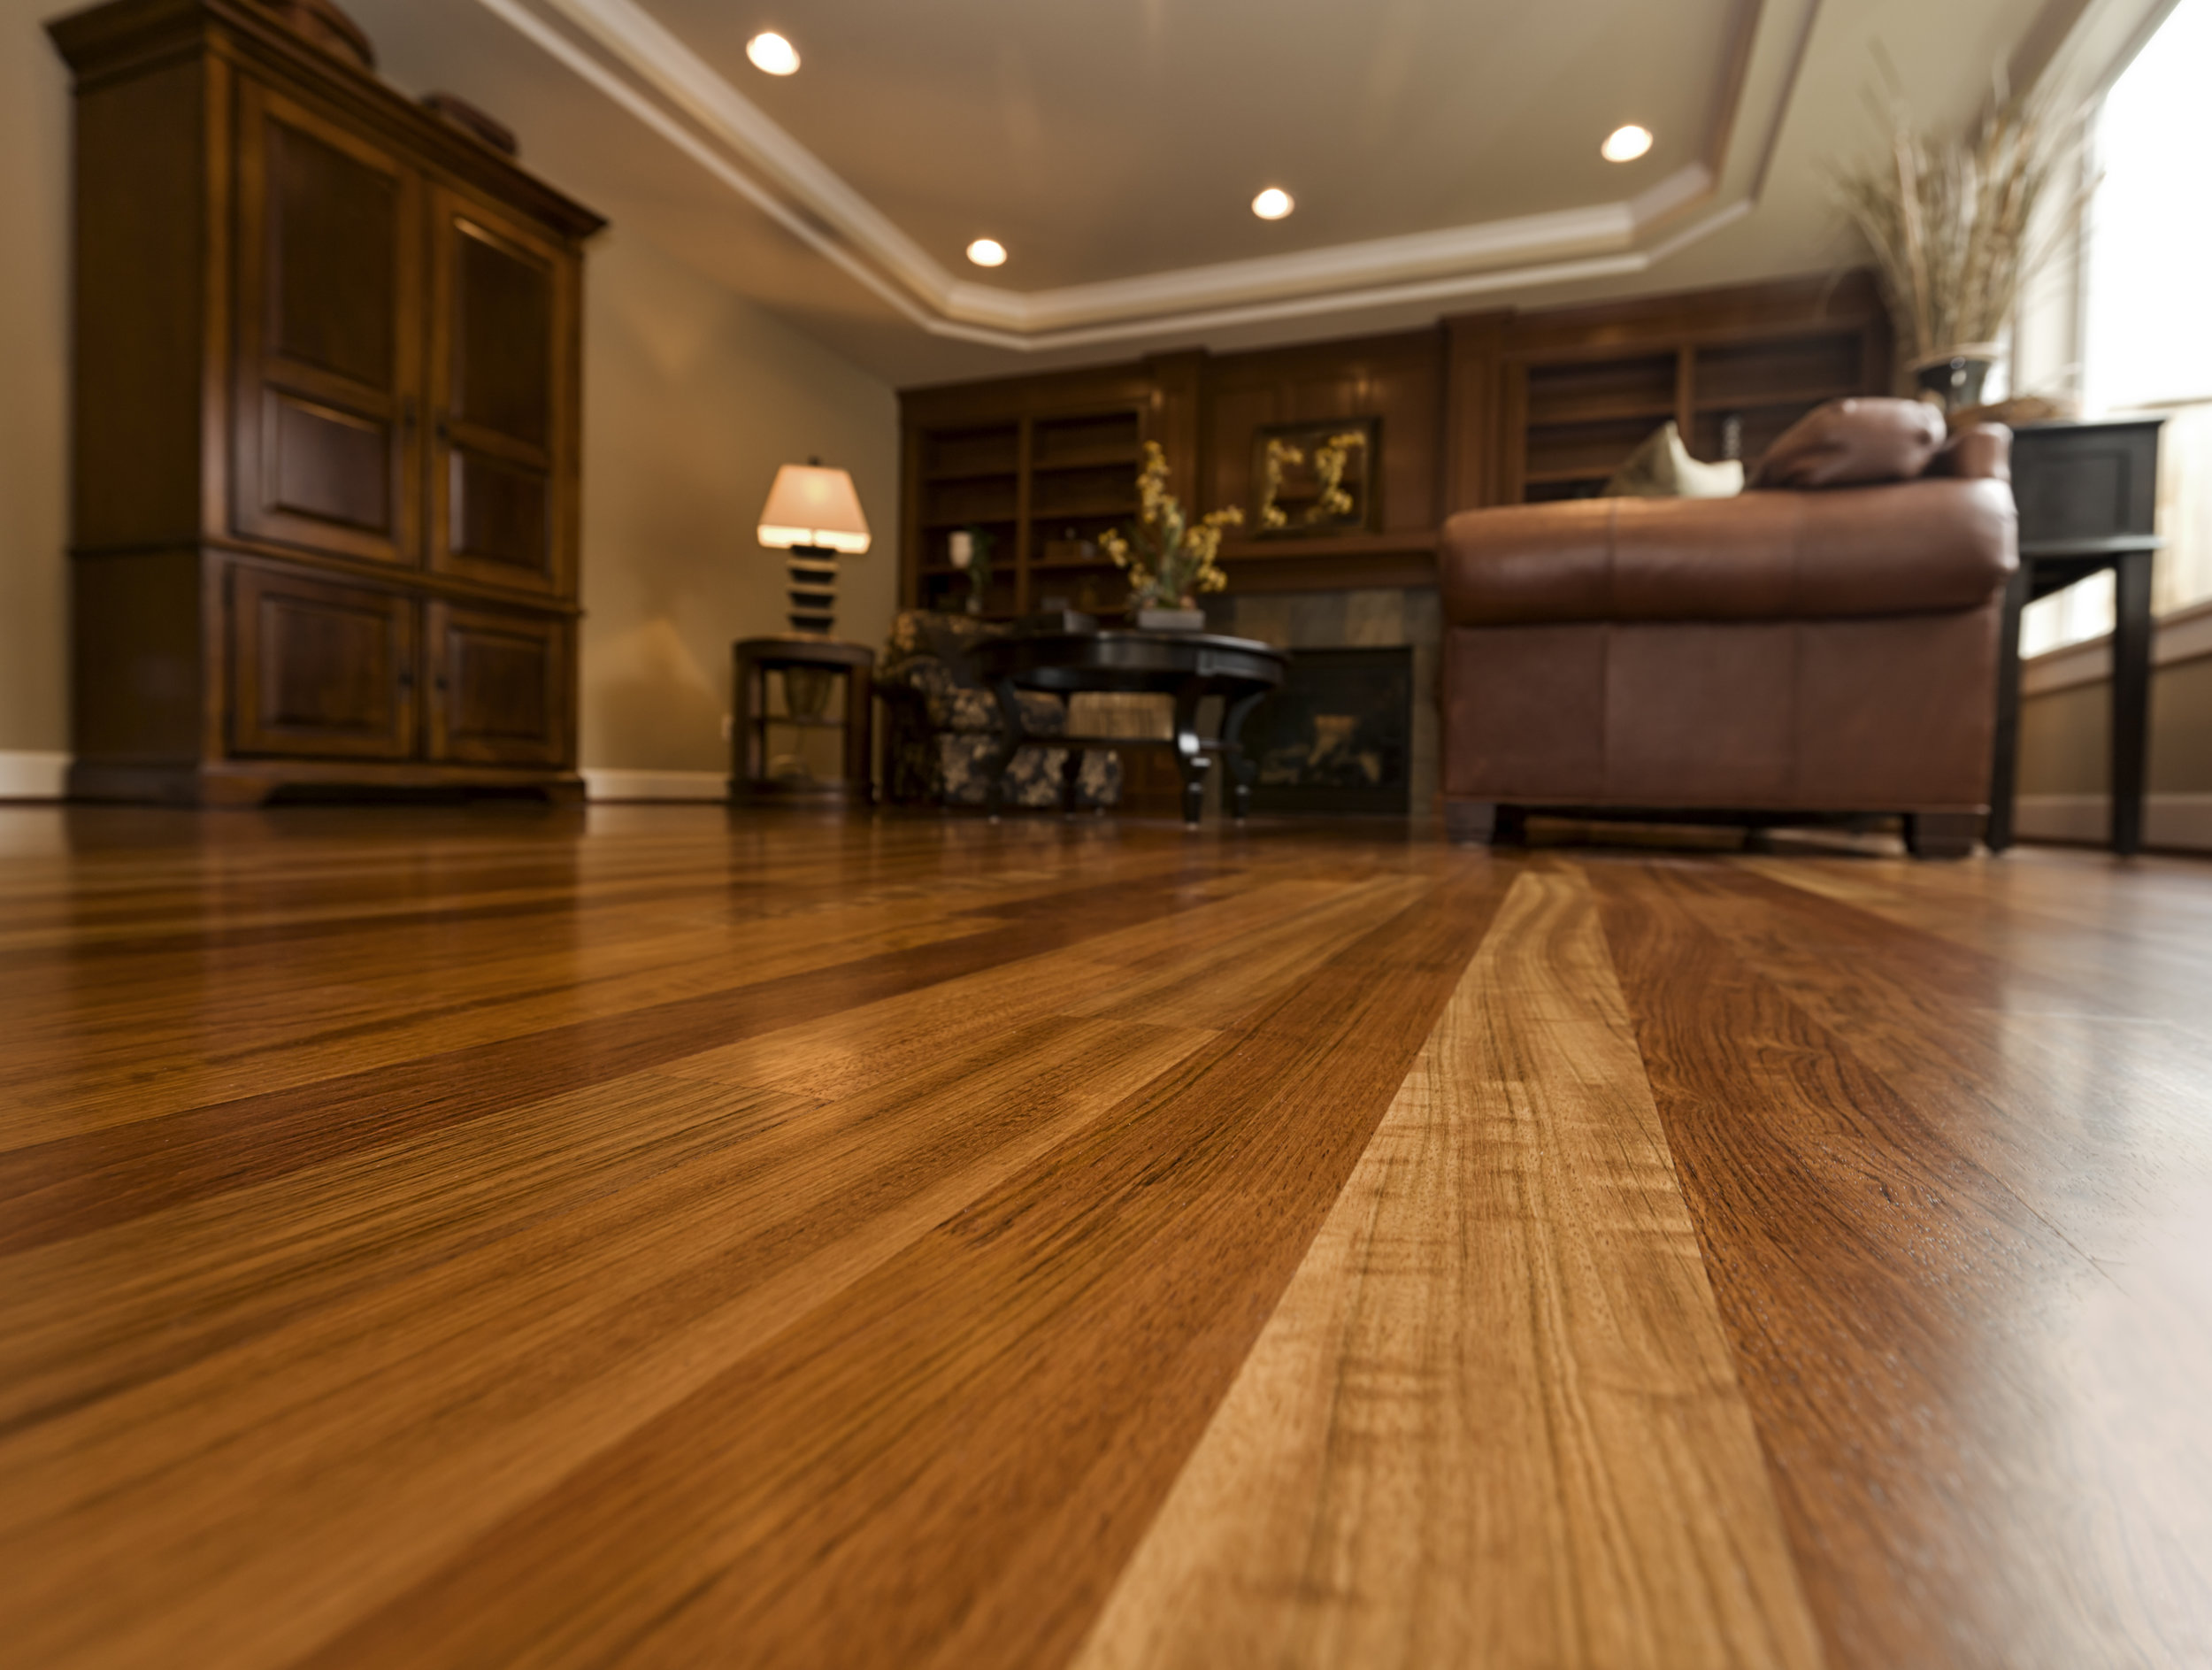 5 KEYS TO WOOD FLOOR CARE  - call to schedule -  949-496-6079